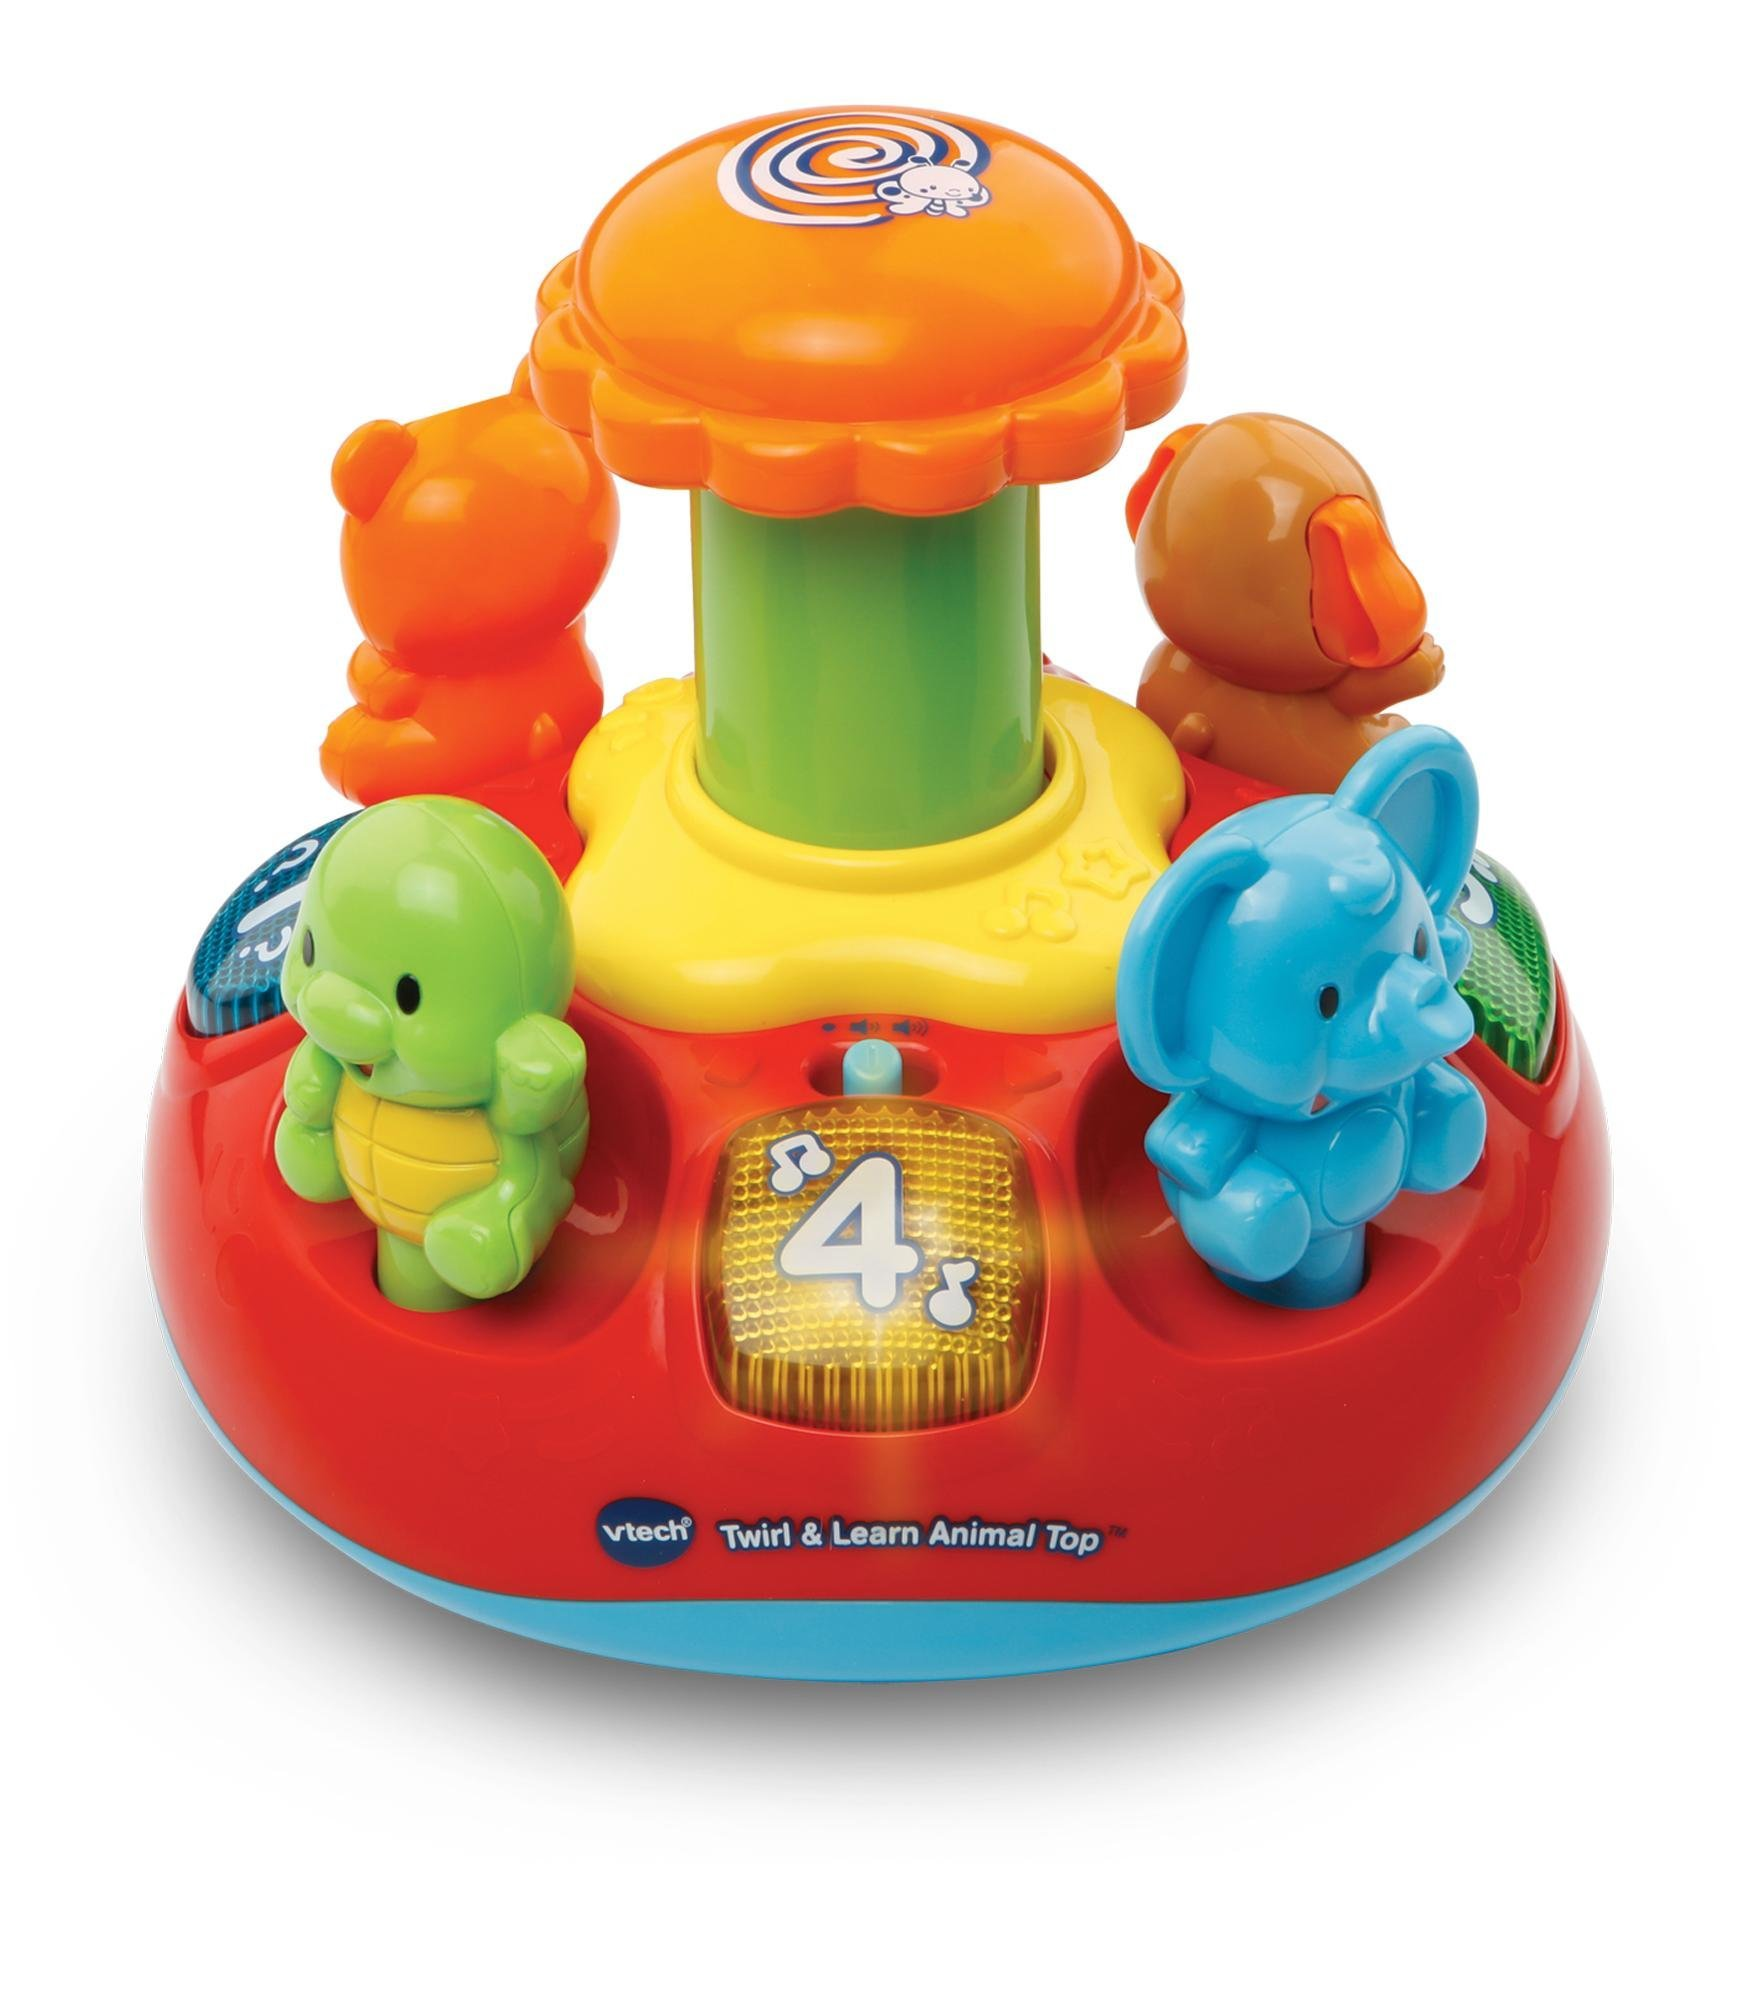 VTech Baby Push and Play Spinning Top Toy Multi Coloured VTech